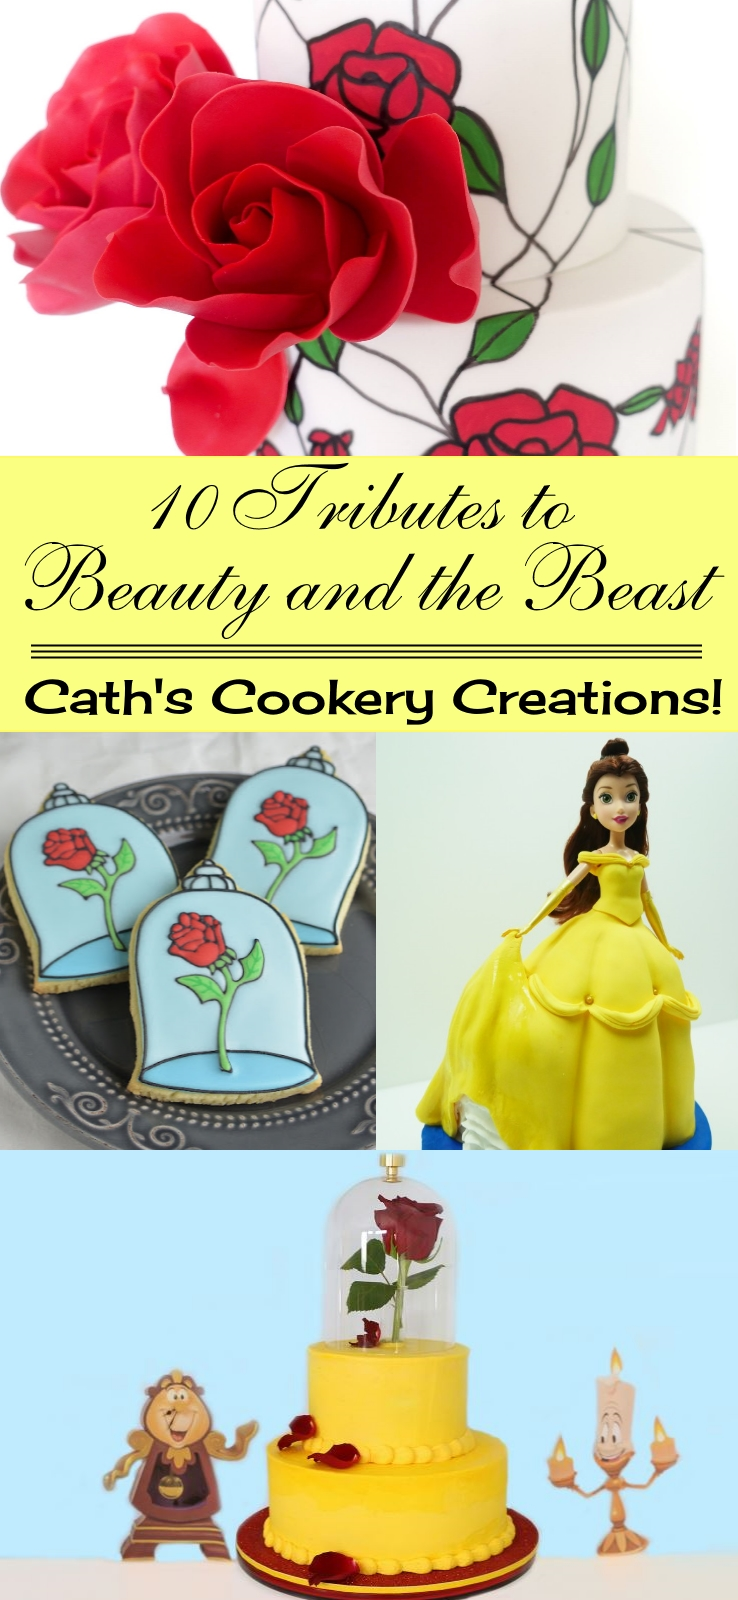 10 Tributes to Beauty and the Beast | www.cathscookerycreations.com